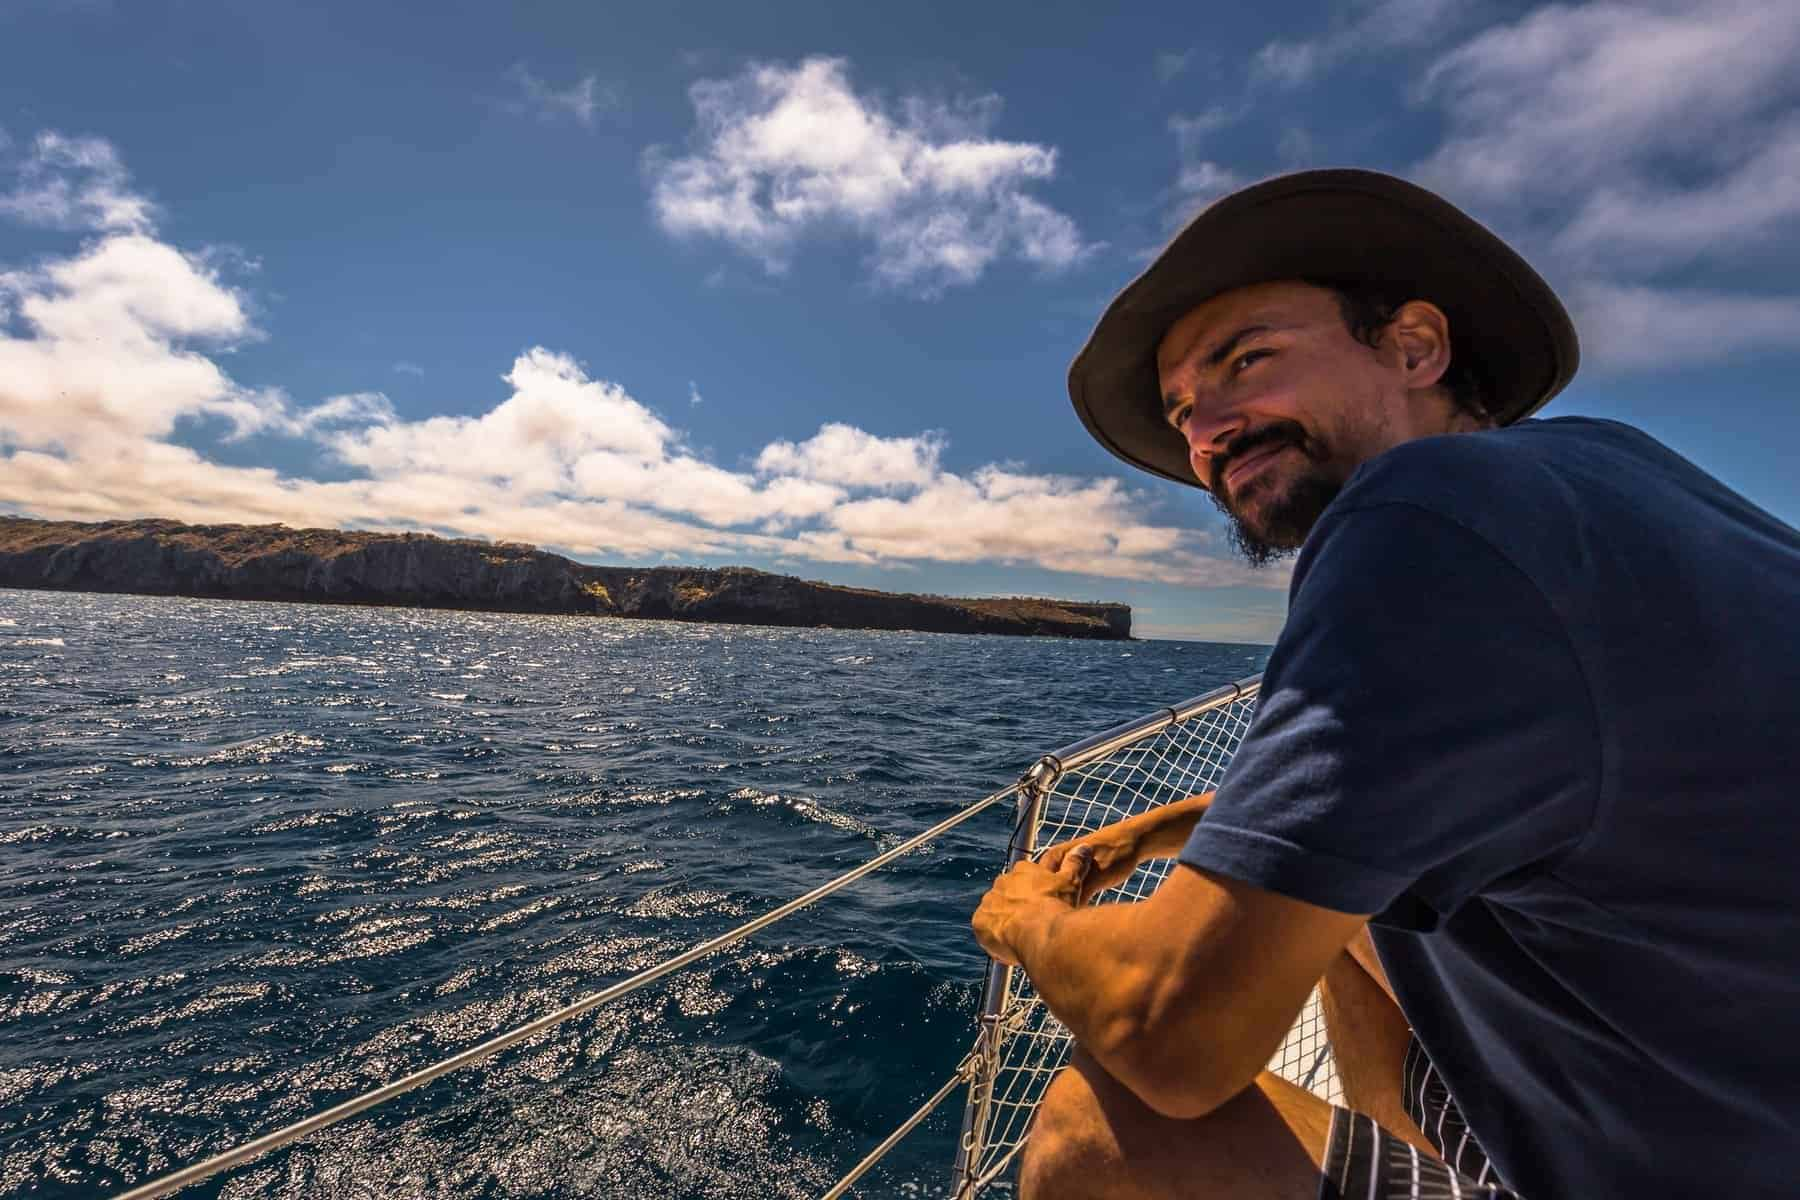 Galapagos Islands - August 24, 2017: Boat riding on the coast of Santa Cruz island, Galapagos Islands, Ecuador.